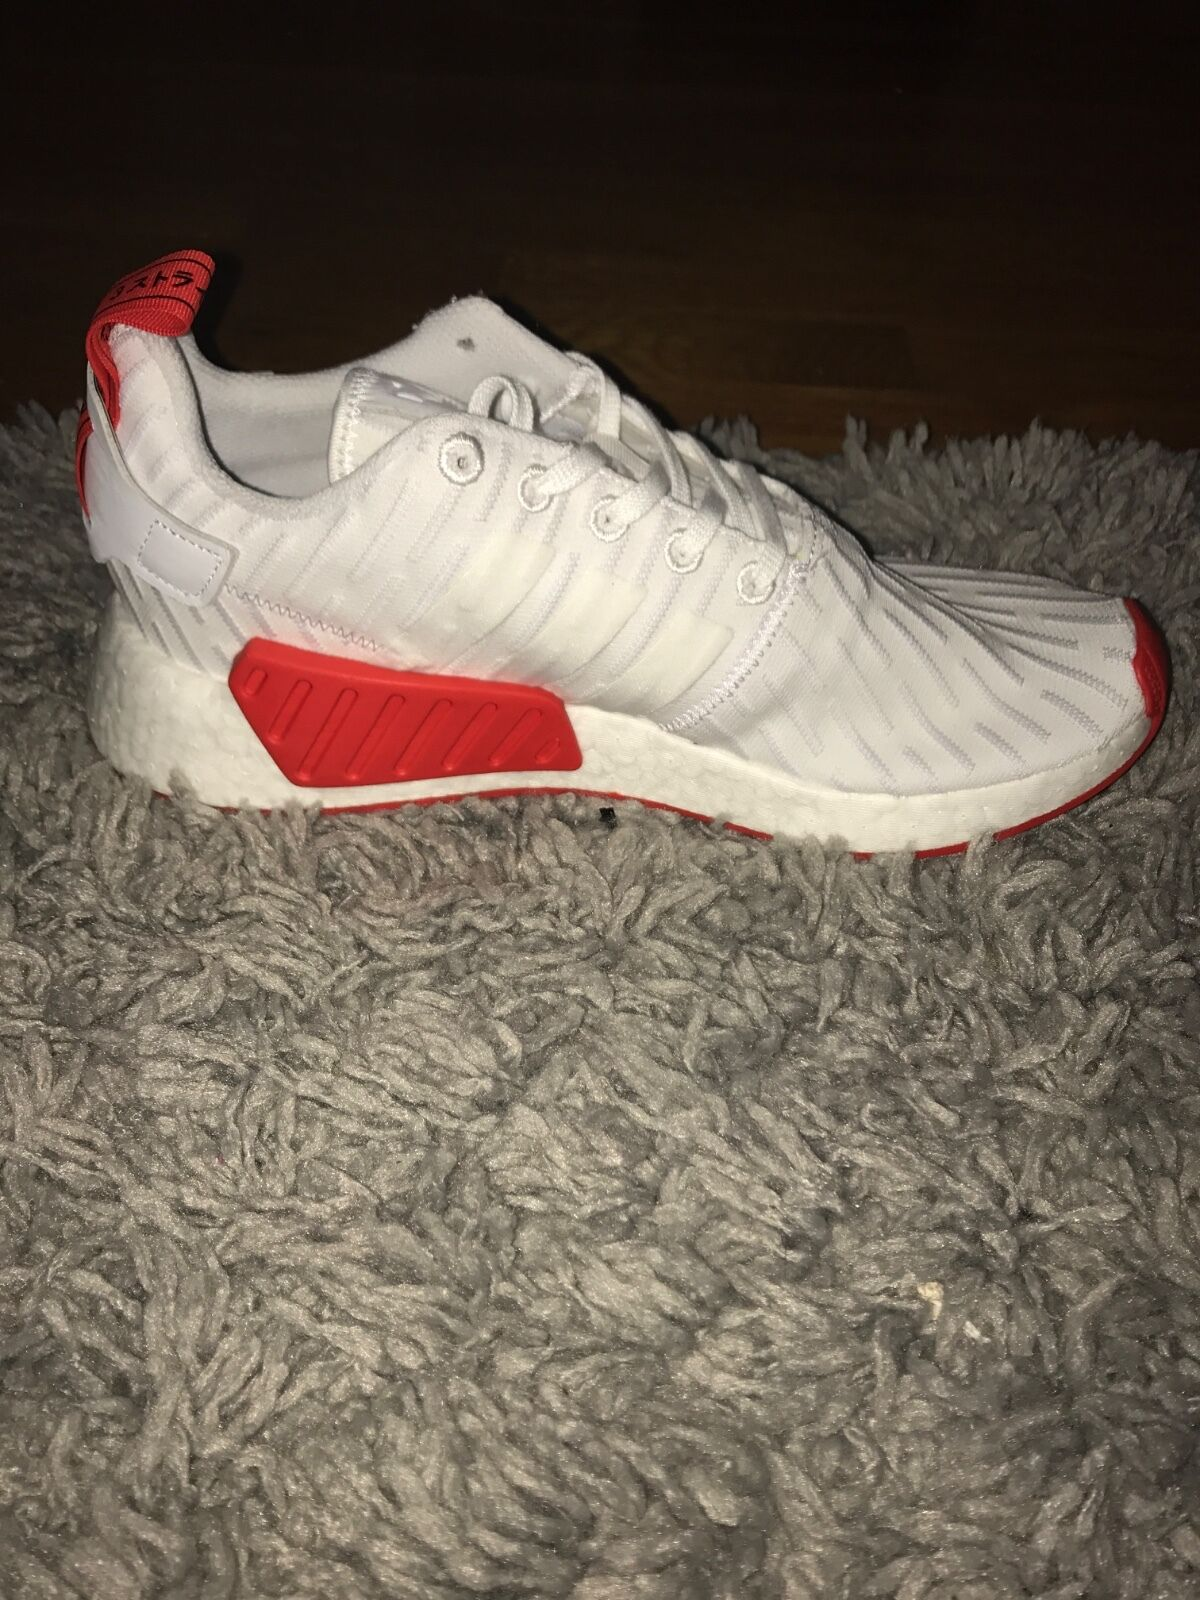 Mens Adidas White Core Red Nmd r2 Sz10